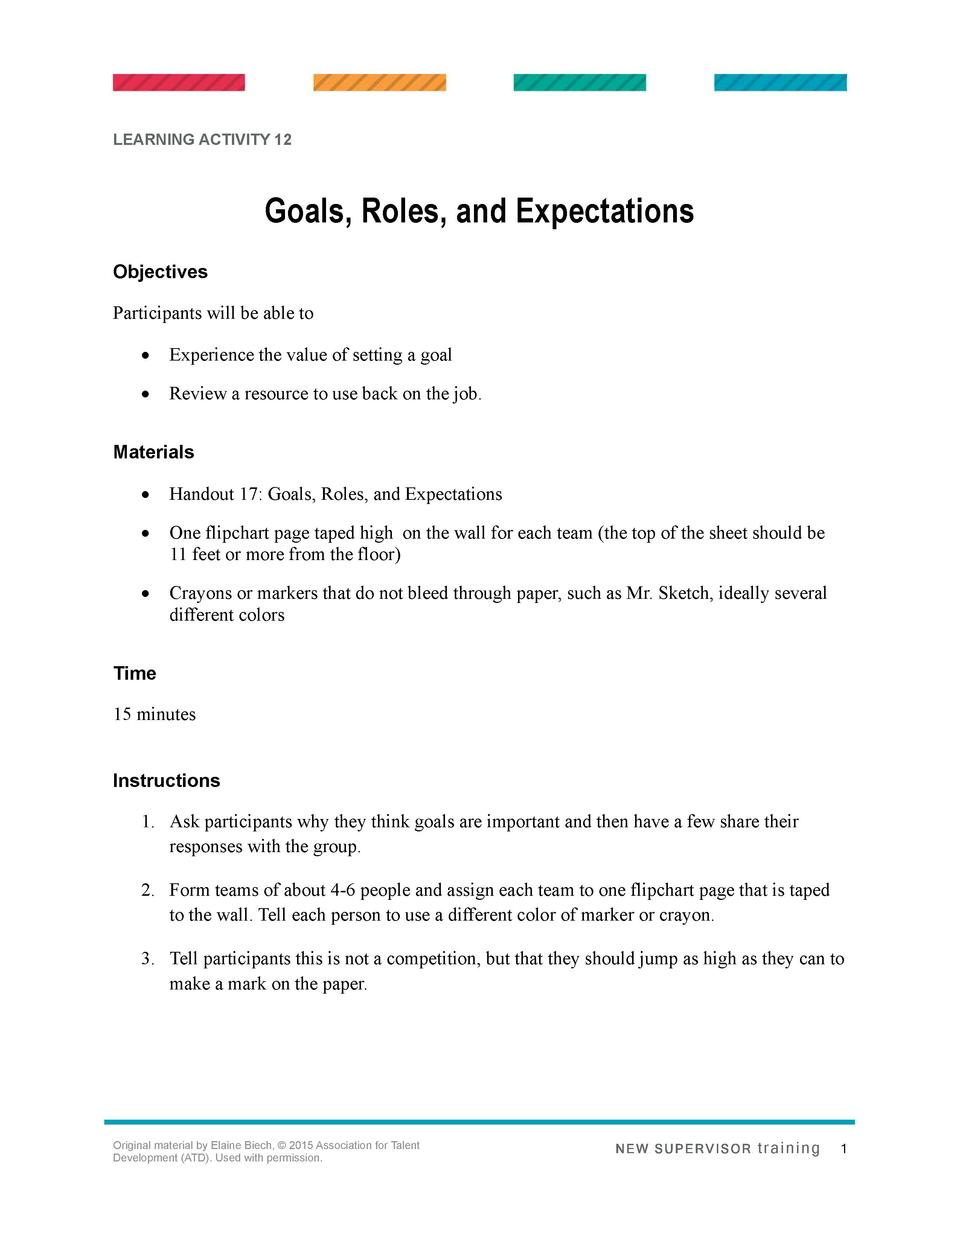 LEARNING ACTIVITY 12  Goals, Roles, and Expectations Objectives Participants will be able to      Experience the value of ...